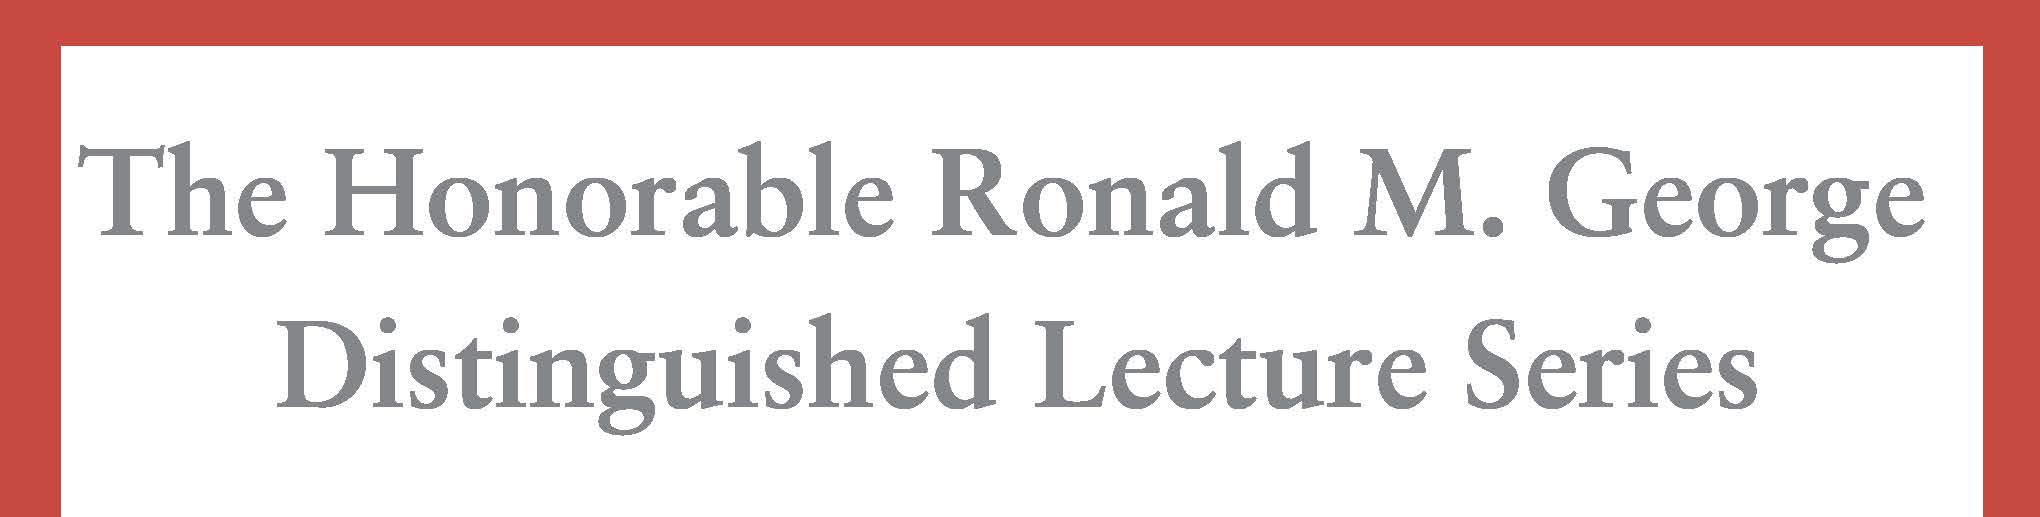 Ronald M. George Distinguished Lecture Series